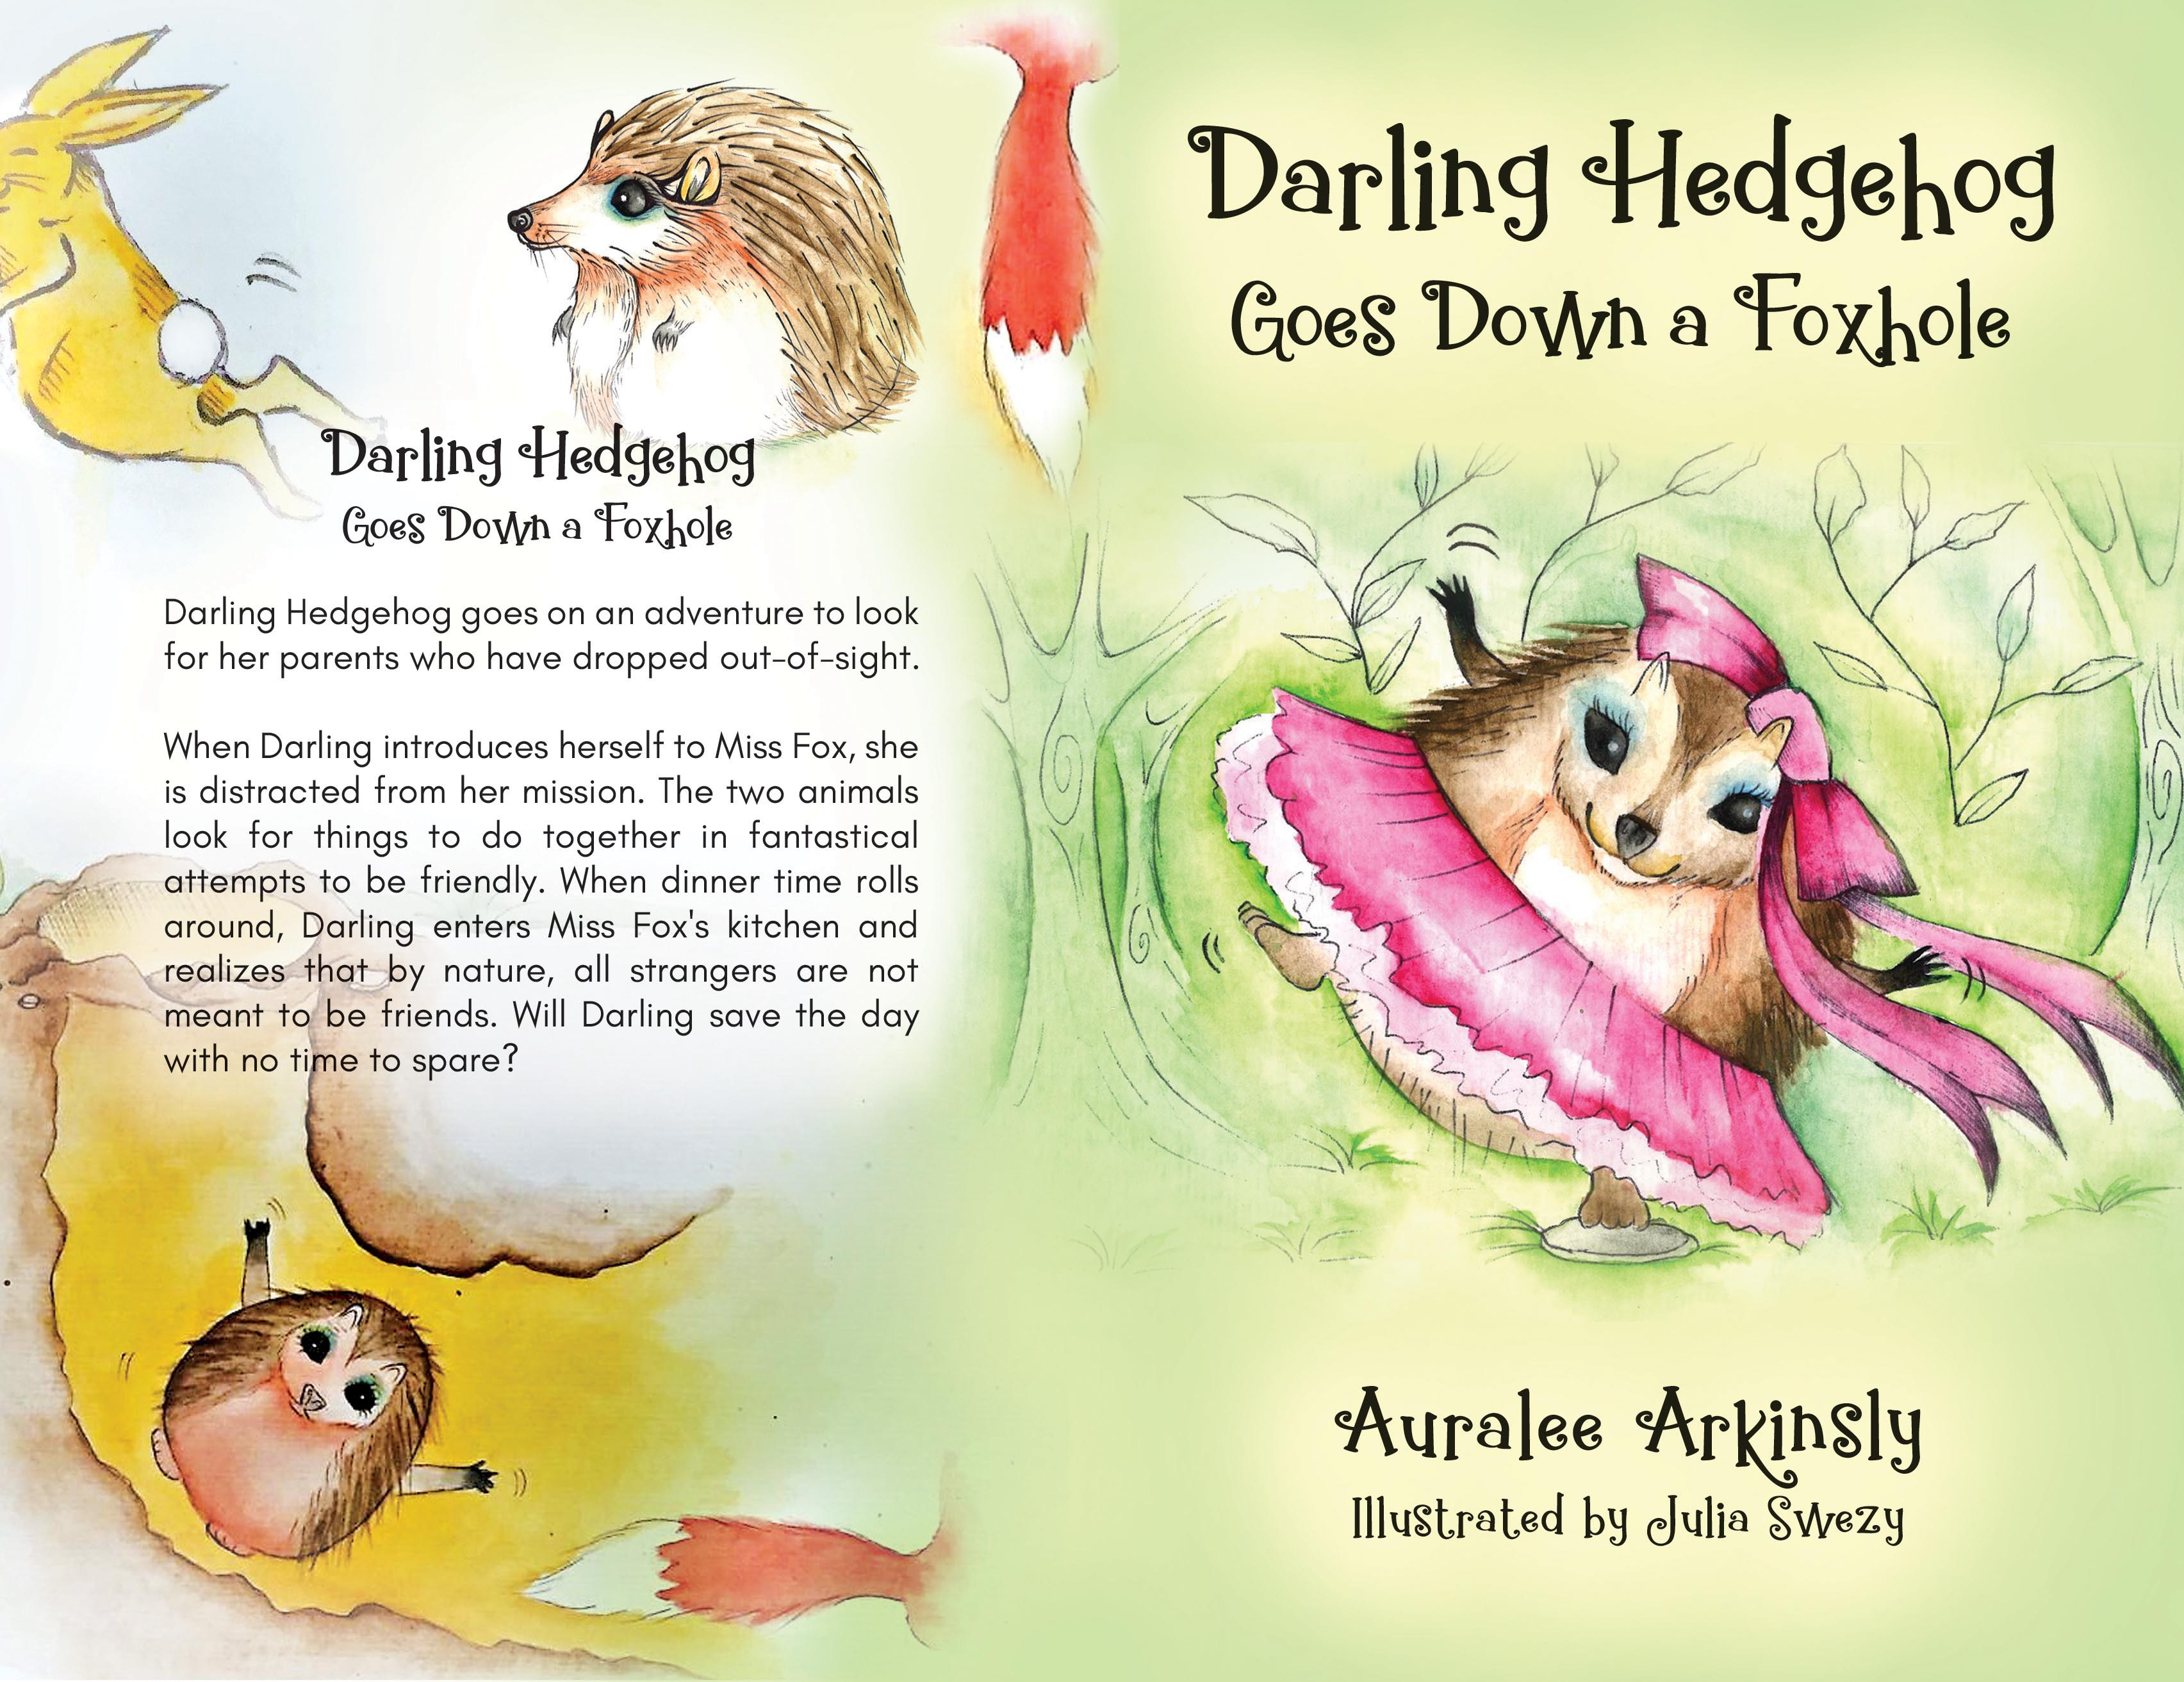 Darling Hedgehog